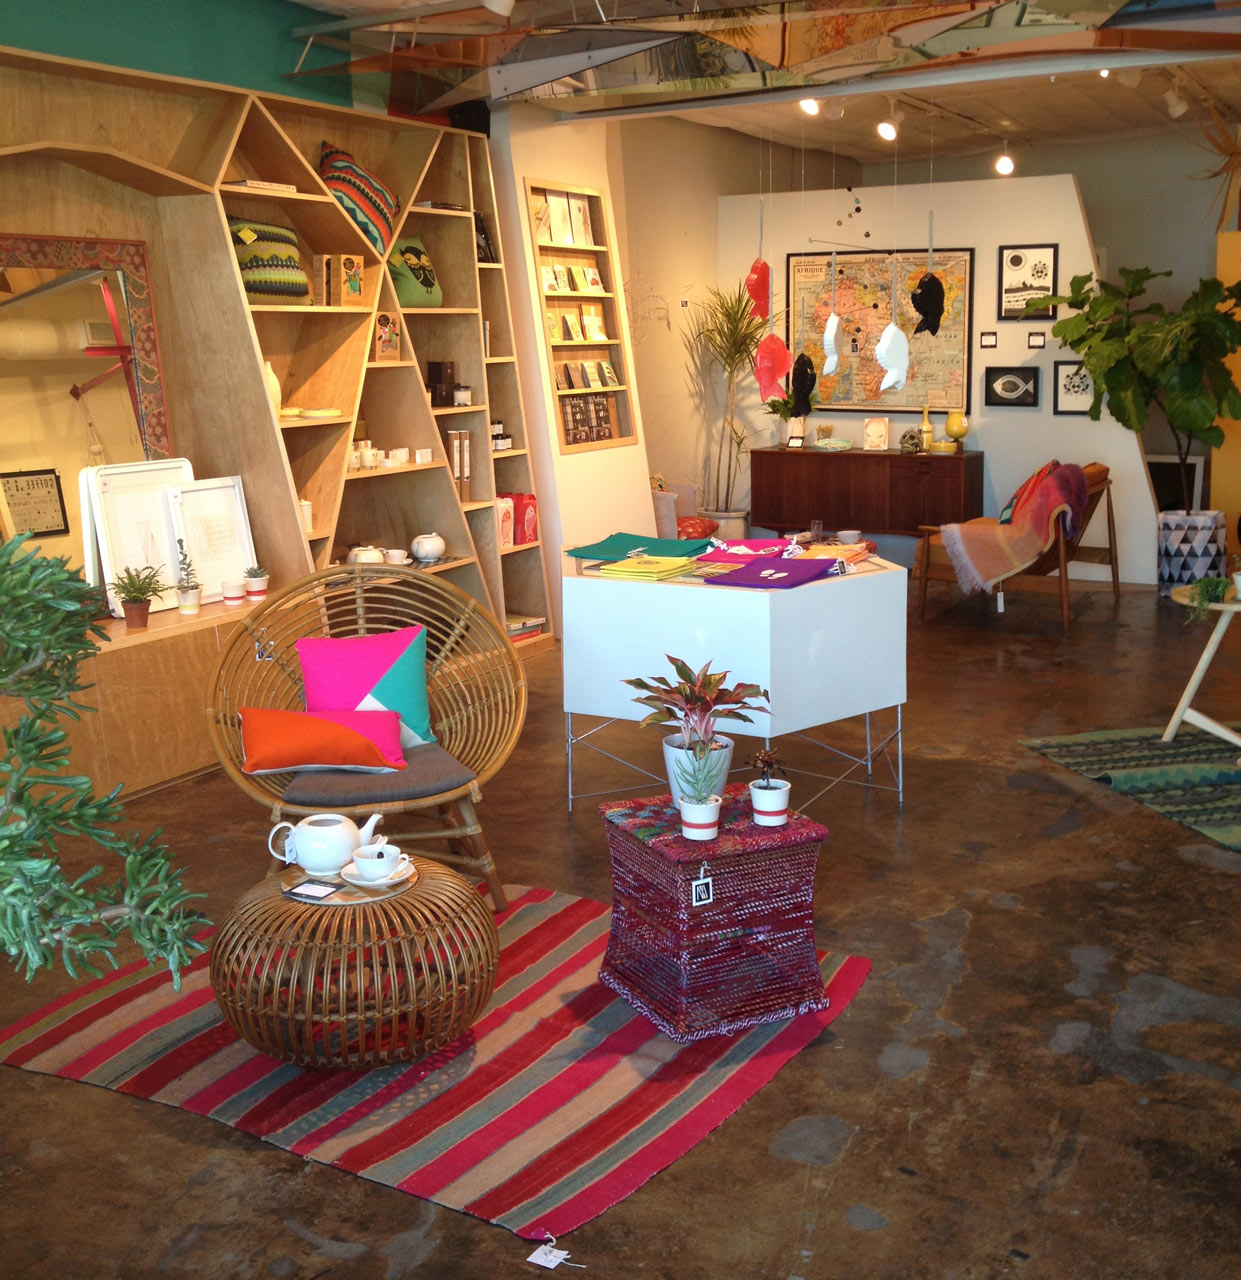 Small Furniture Stores: Mondays, Maggie Muses: Small Independent Retail